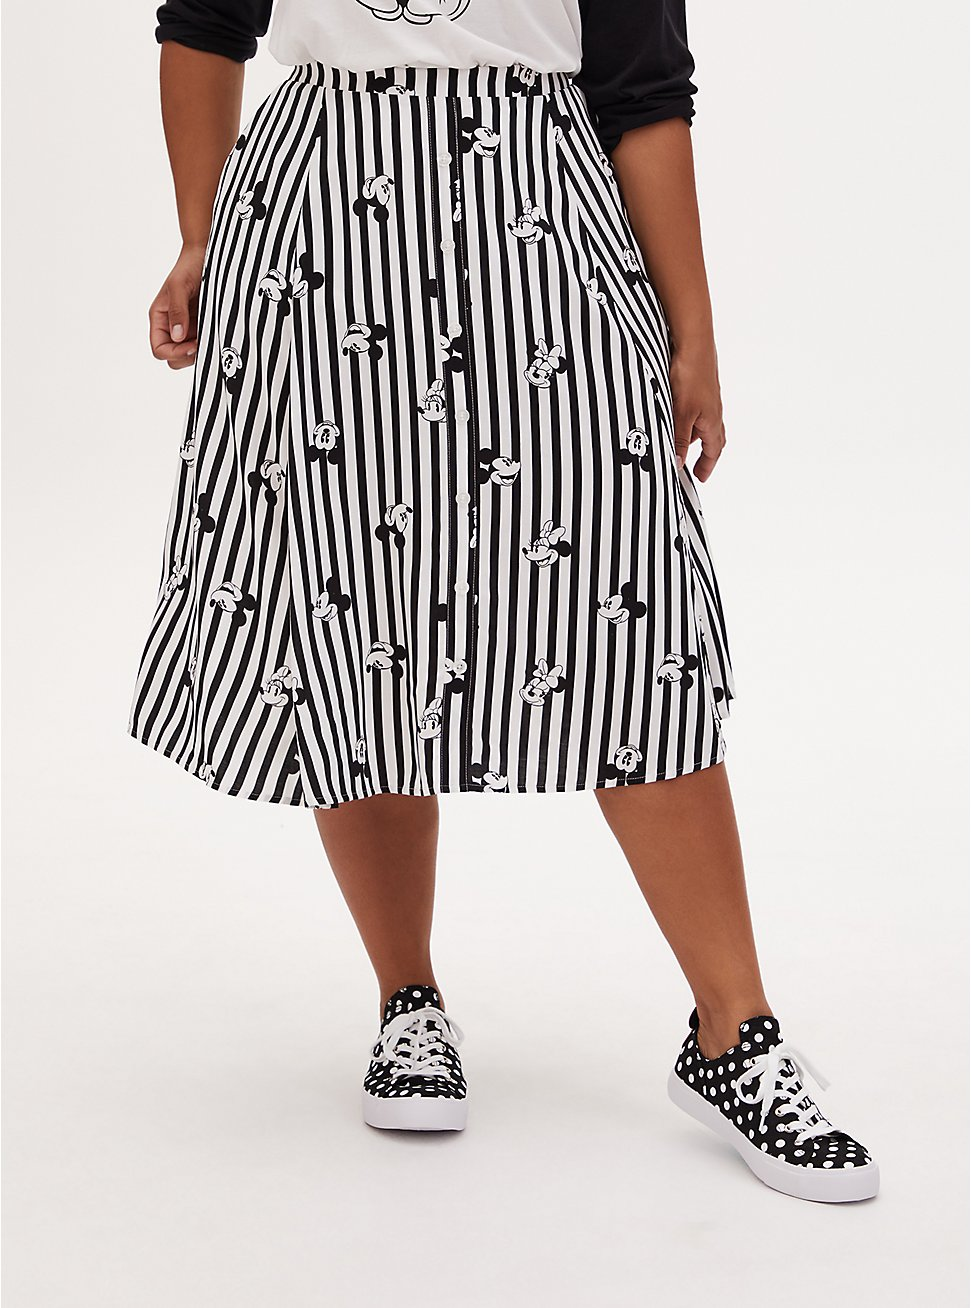 Disney Mickey Mouse & Minnie Mouse Black & White Stripe Challis Midi Skirt, BLACK-WHITE STRIPE, hi-res